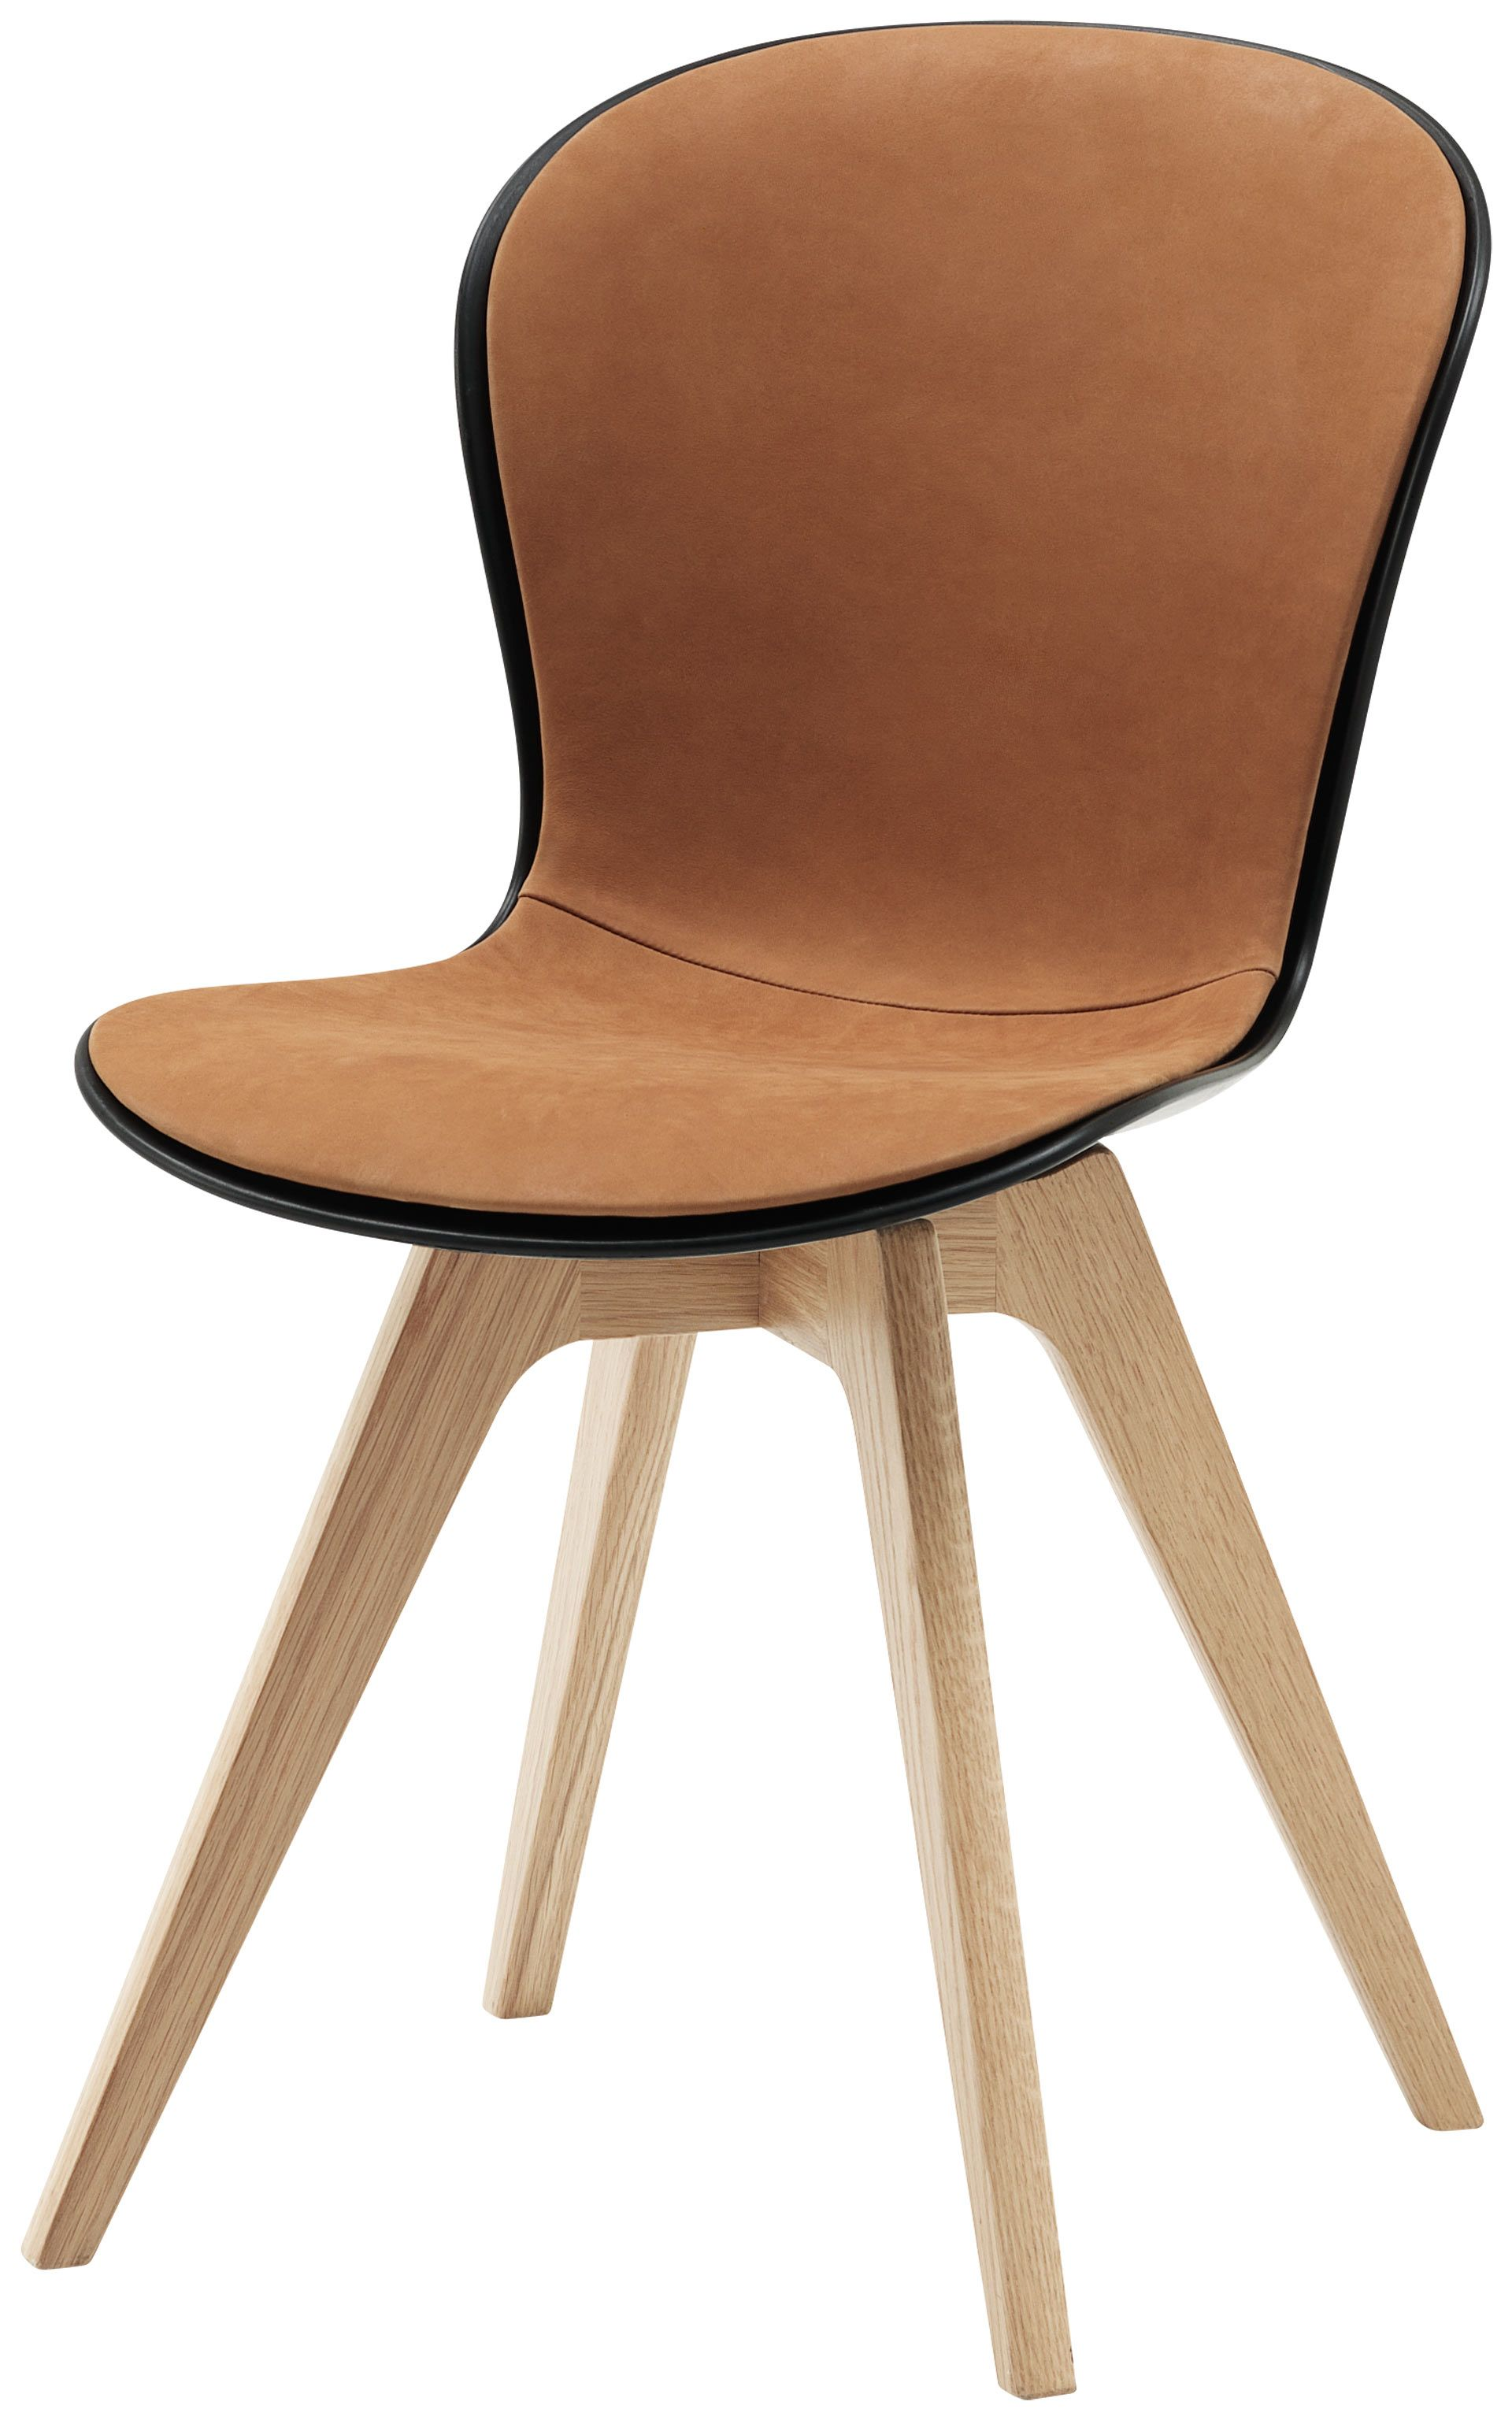 Modern dining chairs designer dining chairs boconcept for Modern dining chairs australia